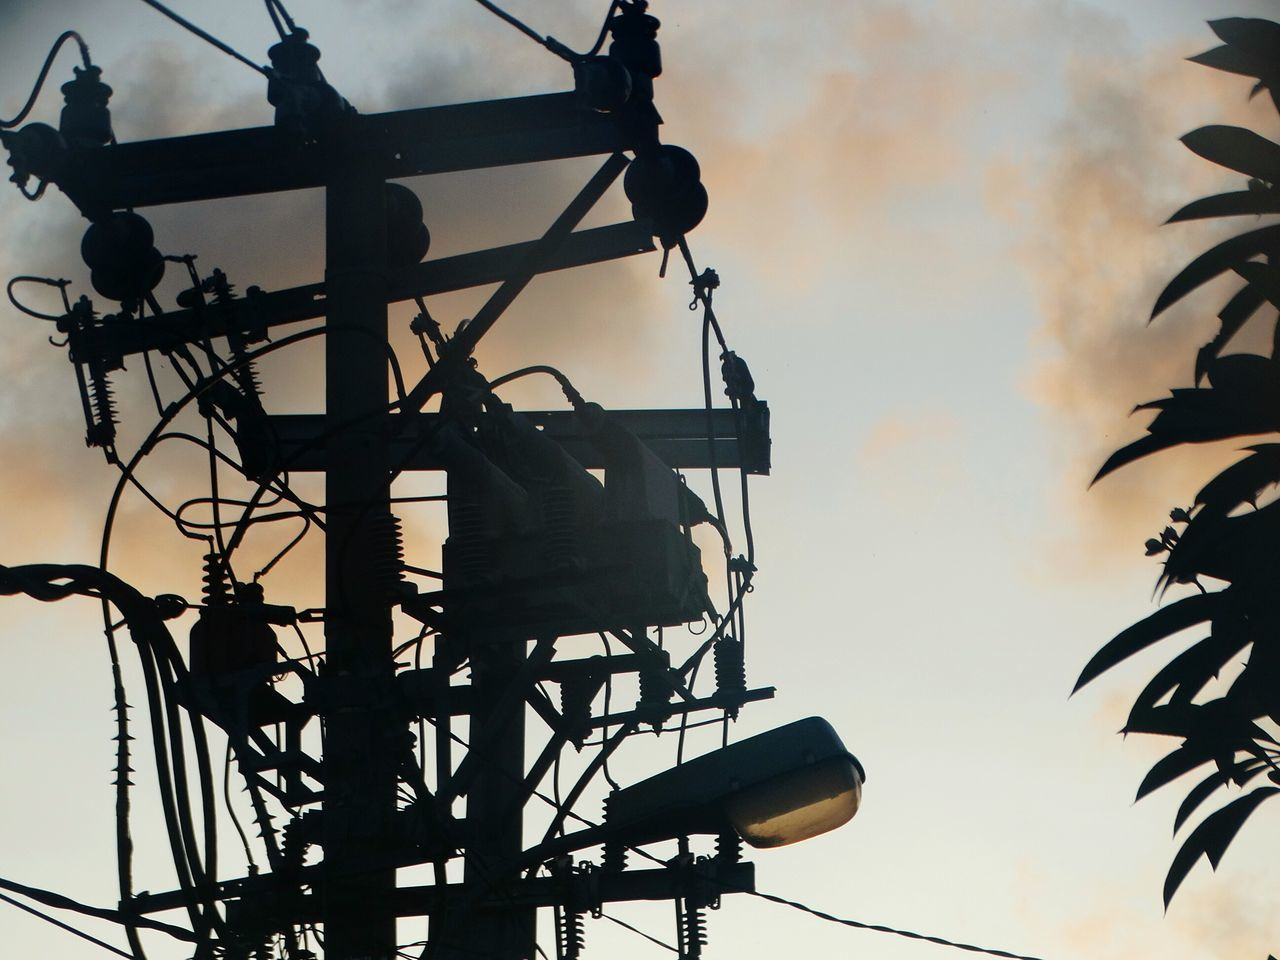 No People Sky Sunset Low Angle View Outdoors Nature Day Electricity  Electric Light Electric Tower  Contrast